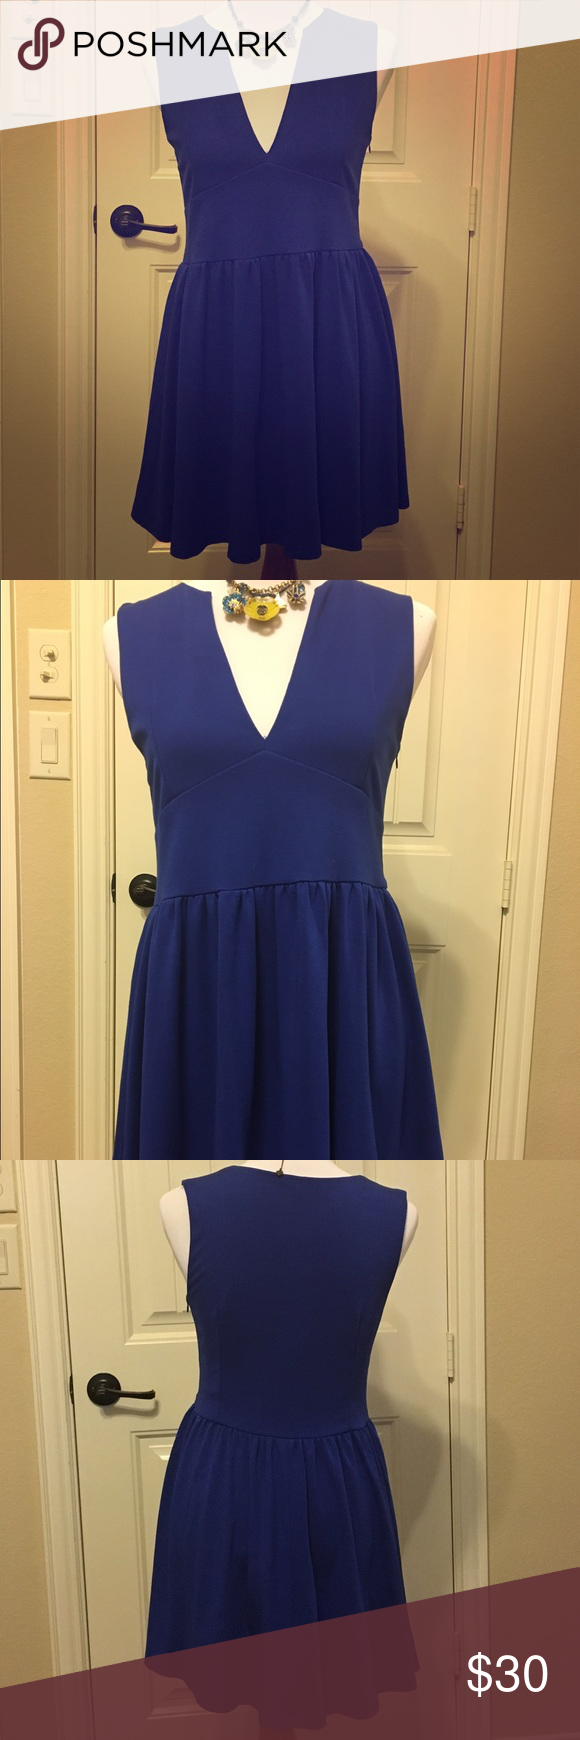 """Cute Royal Blue dress Adorable blue V-neck dress. Measures approximately 30"""" from shoulder to hem. Very very tiny pull at base of v-neck (see photo). 100% polyester. This dress is pretty short, so would probably be best for someone on the shorter side or to be worn with leggings or tights. Runs slightly small. daily look Dresses Mini"""